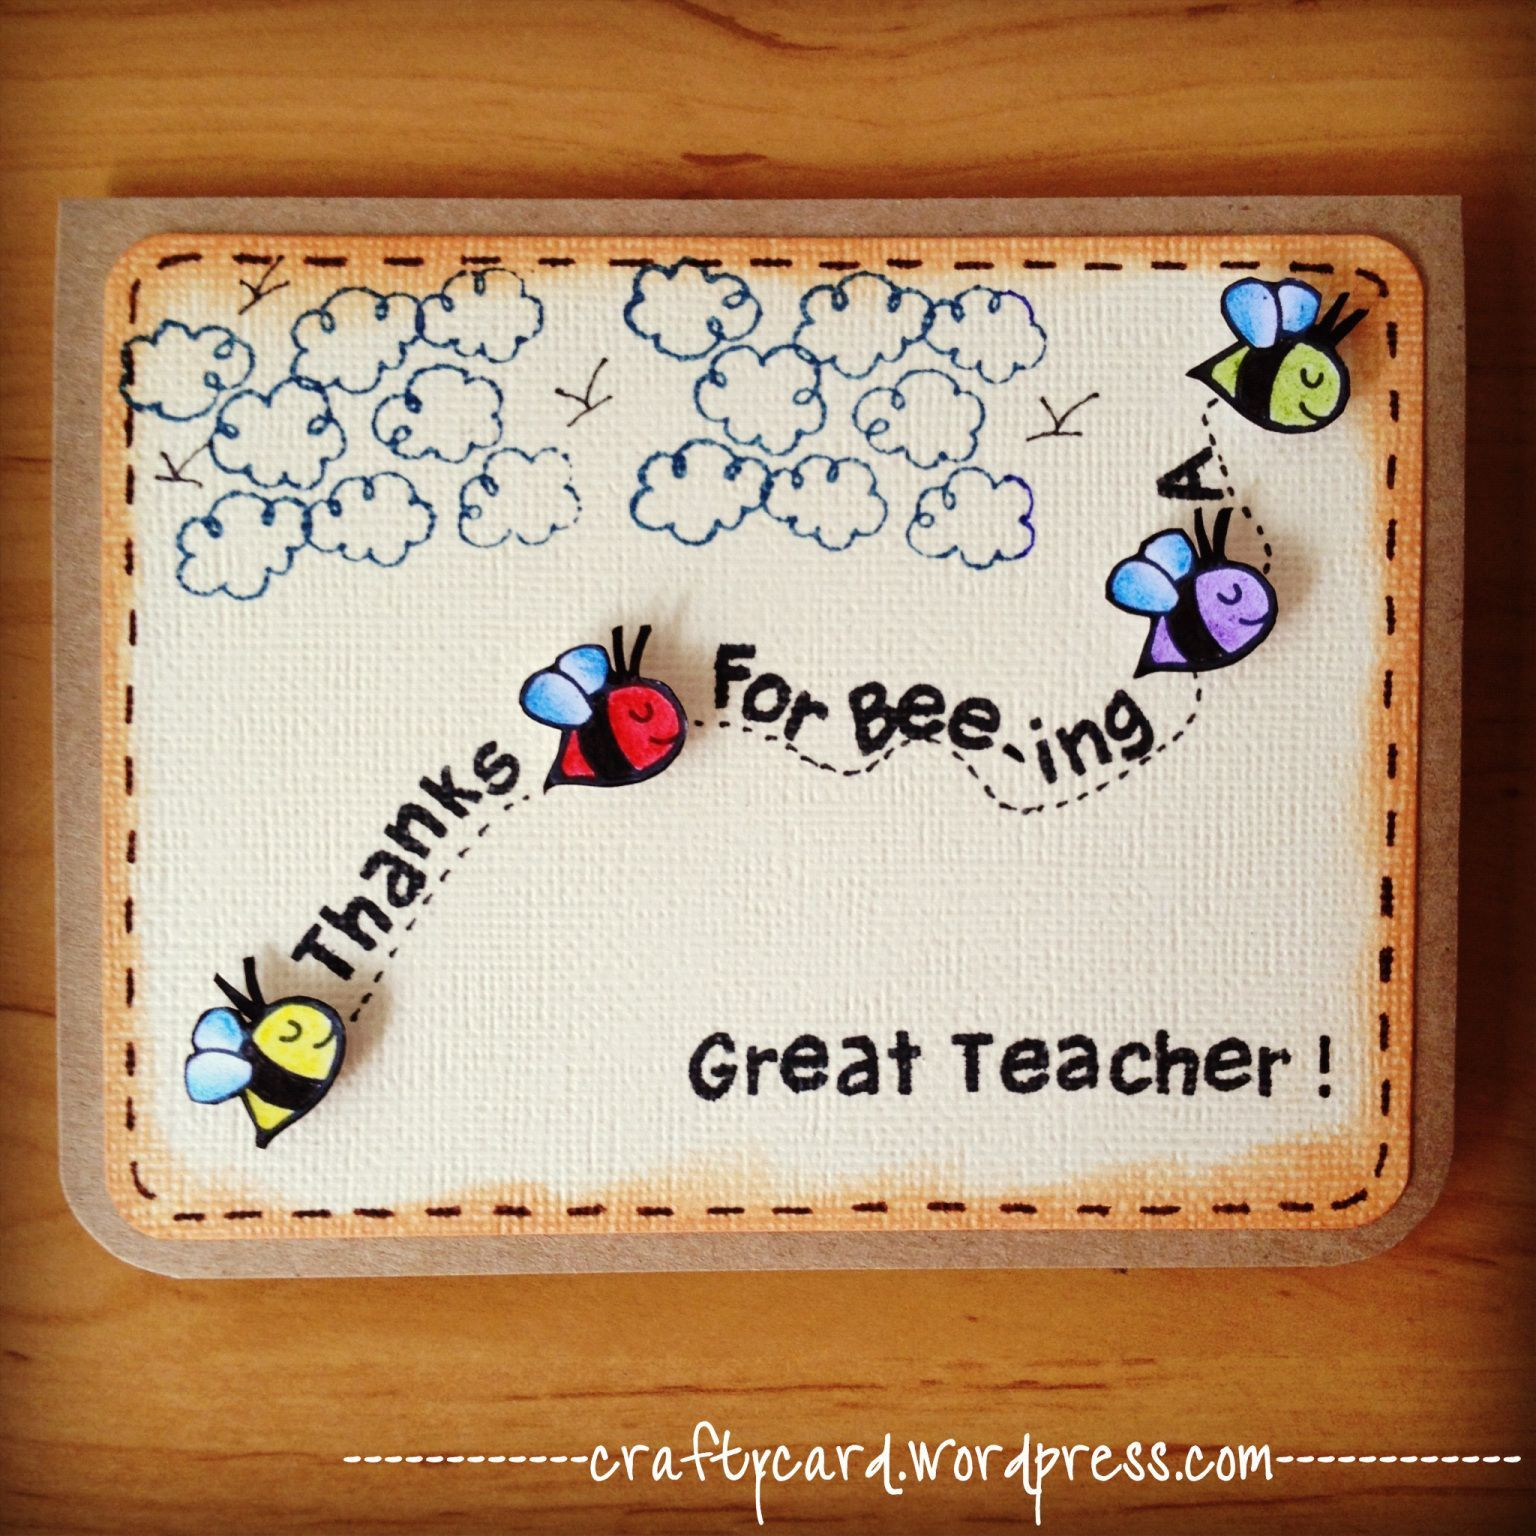 11 Awesome Teachers Day Card Easily Pics In 2020 Teachers Day Greeting Card Teachers Day Card Teachers Day Greetings